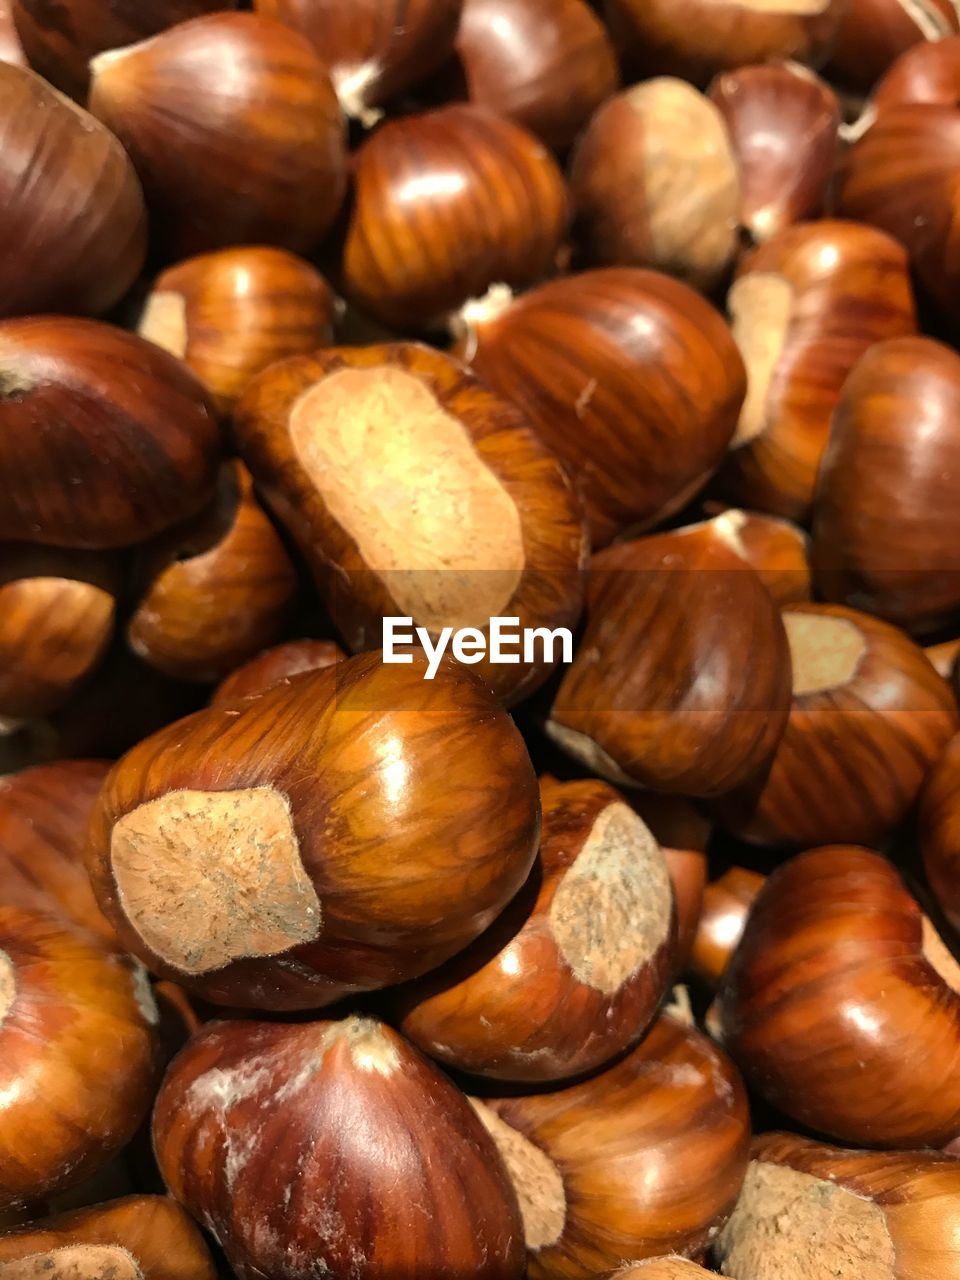 brown, chestnut - food, nut, nut - food, chestnut, still life, food, large group of objects, backgrounds, full frame, food and drink, abundance, wellbeing, freshness, close-up, no people, indoors, healthy eating, high angle view, hazelnut